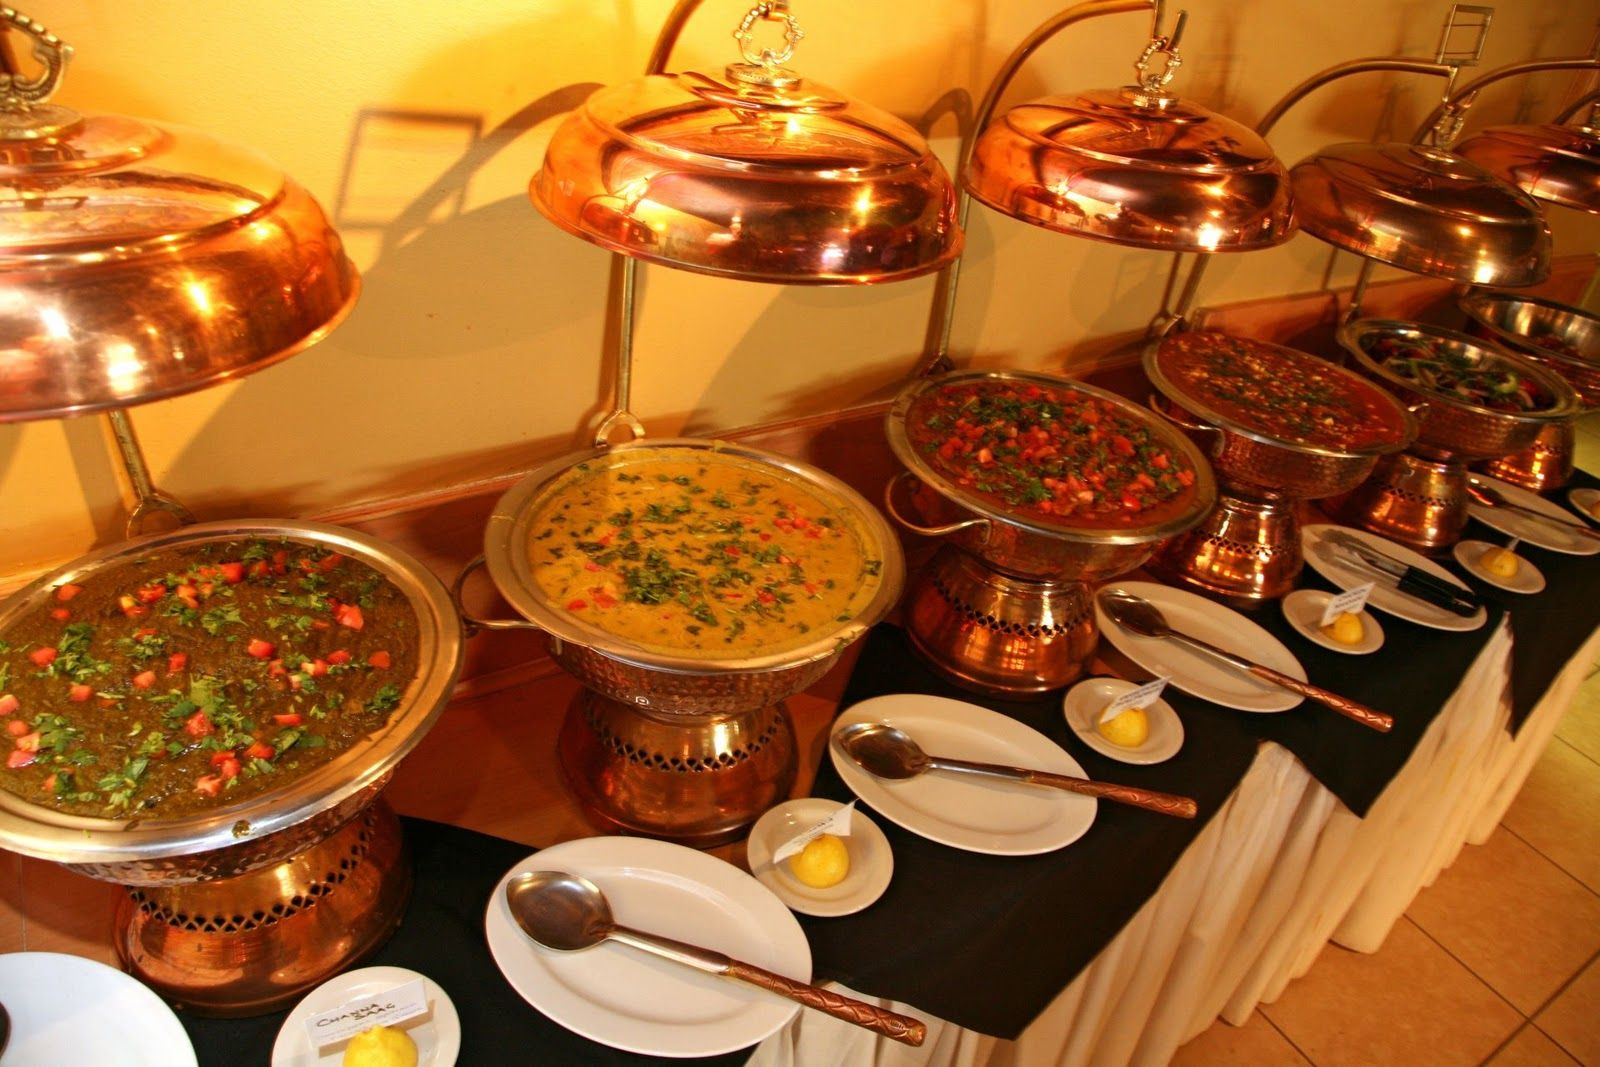 catering | Delicious Wedding Catering in Delhi | Craft and decor ...